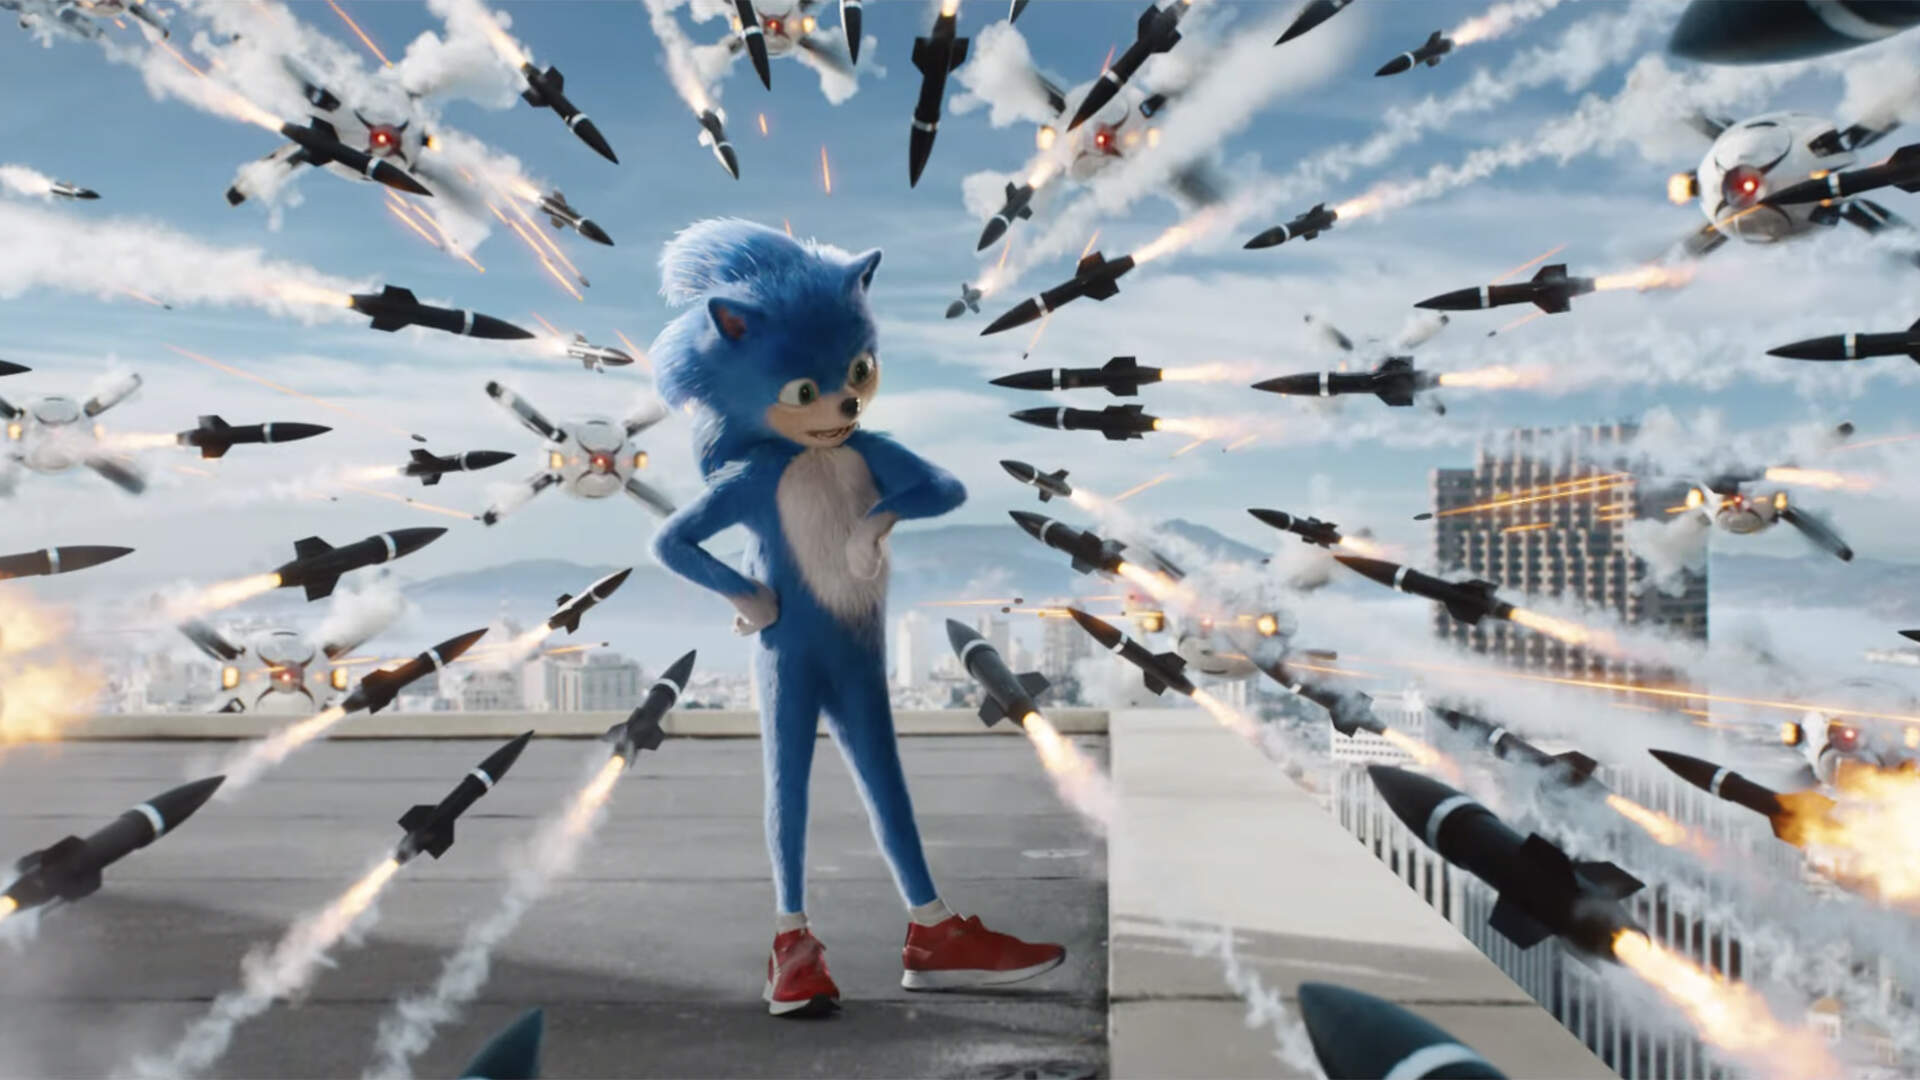 Breaking Down the Subtle and Not So Subtle '90s References in the Sonic the Hedgehog Movie Trailer